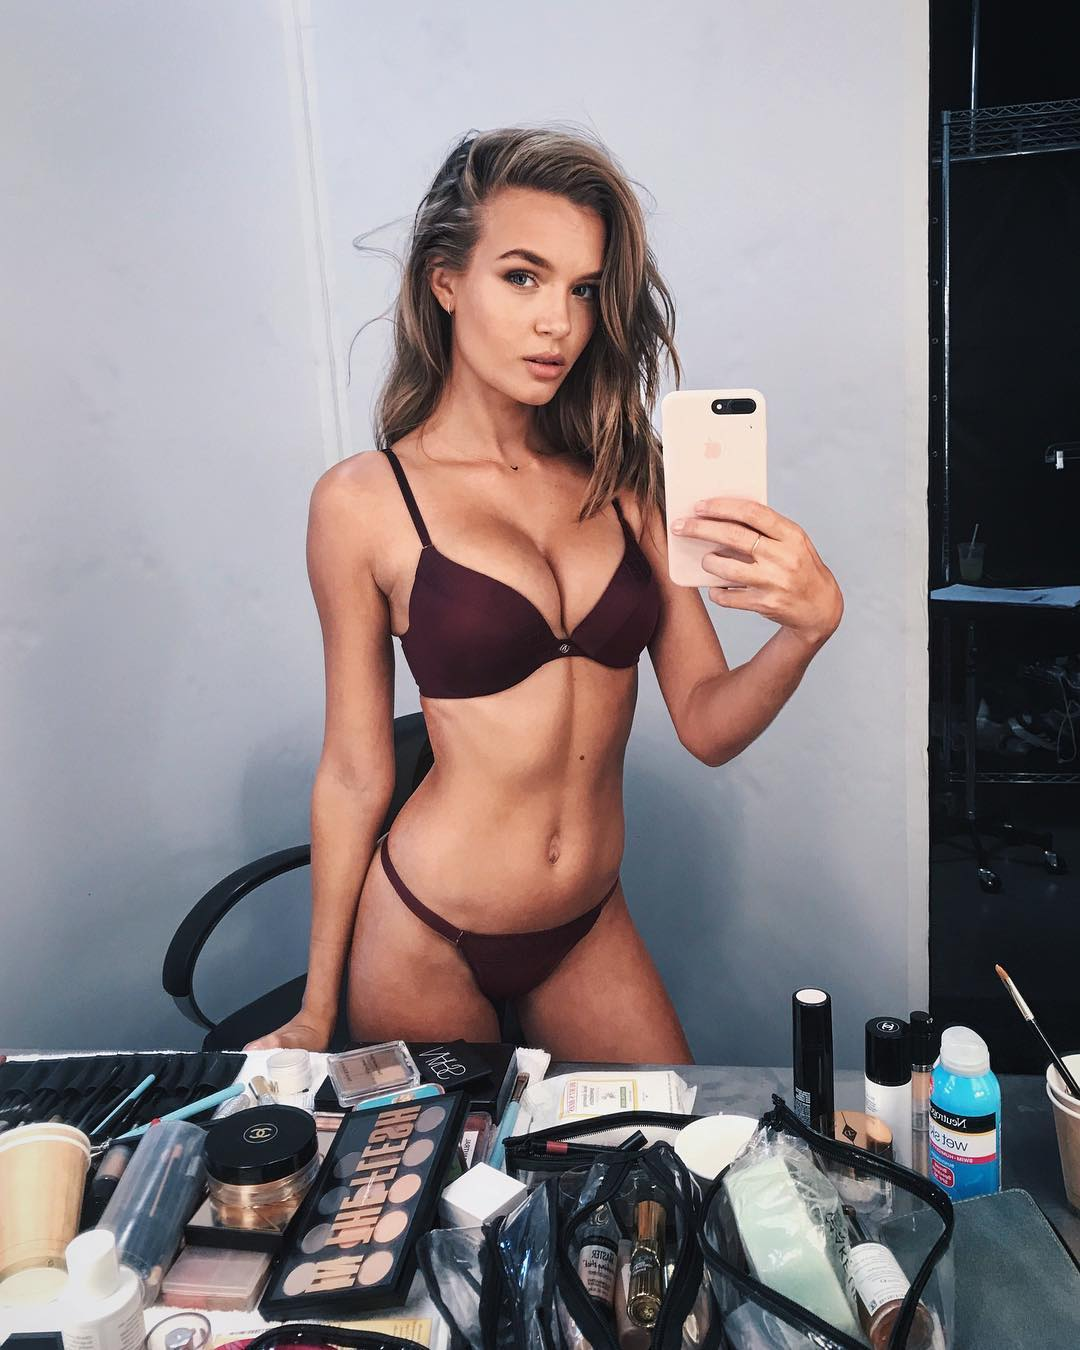 ba6ed0901f 100 Hottest Instagram Models to Follow - Part 1 - SWAGGER Magazine